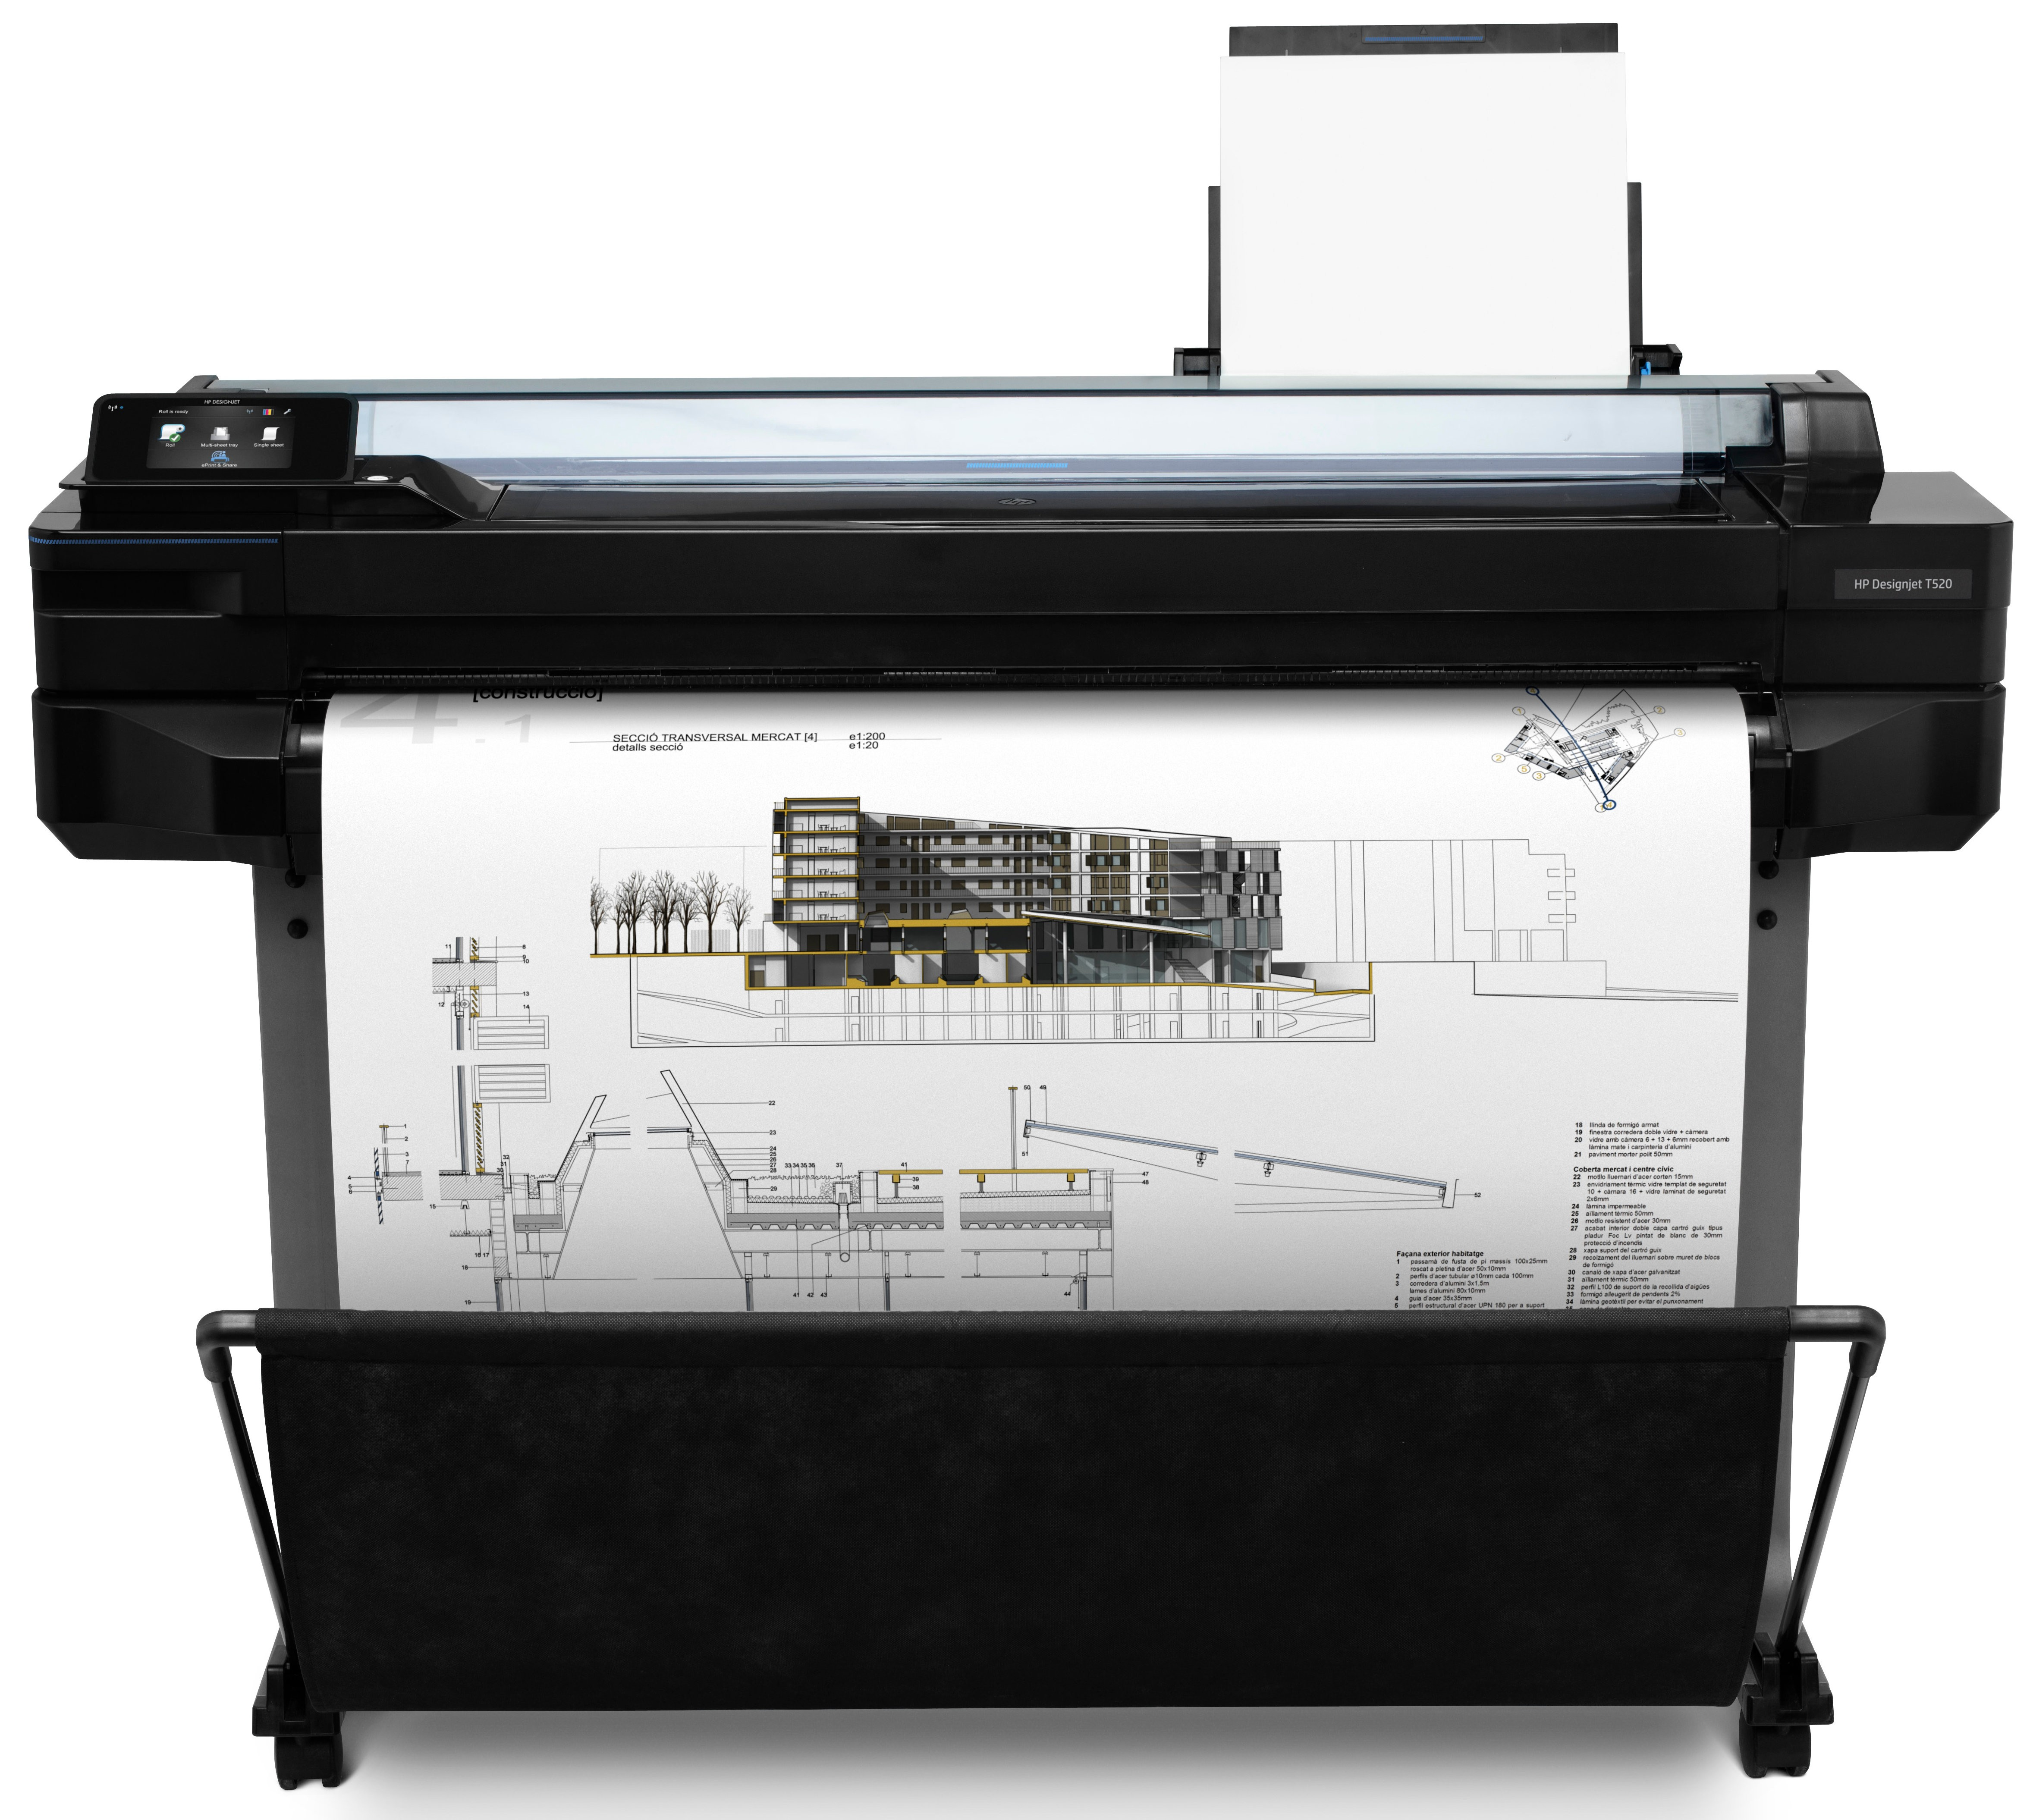 4 separate inks  Res 2400x1200dpi  Media handling: sheet feed  roll feed  input tray  automatic cutter  1GB memory   Network  Wi-FI  E-print  USB2.0 supplies: 711 Black 711 Color